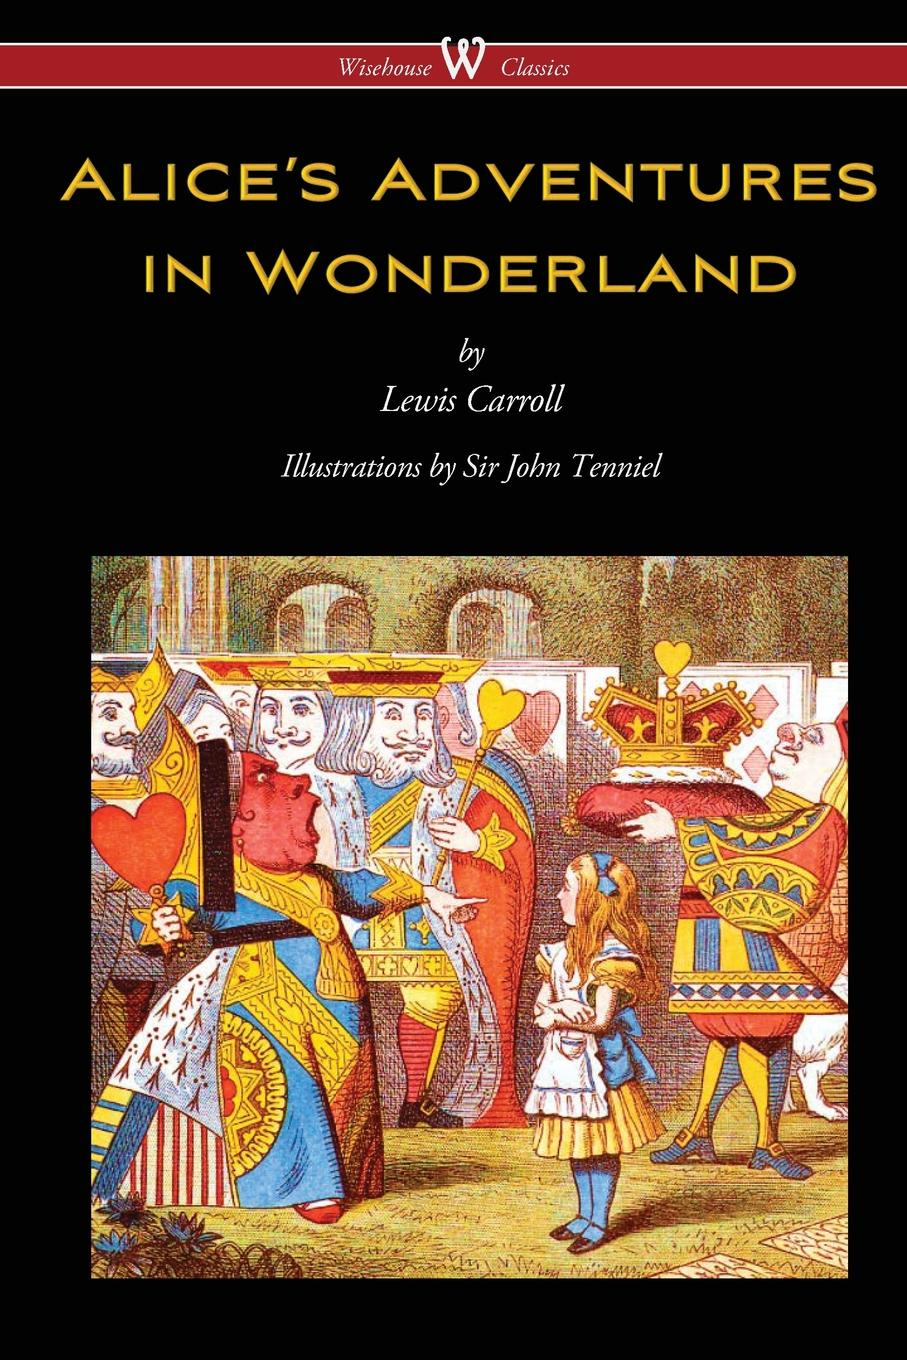 Lewis Carroll Alice.s Adventures in Wonderland (Wisehouse Classics - Original 1865 Edition with the Complete Illustrations by Sir John Tenniel) clinique отшелушивающий лосьон для жирной кожи отшелушивающий лосьон для жирной кожи